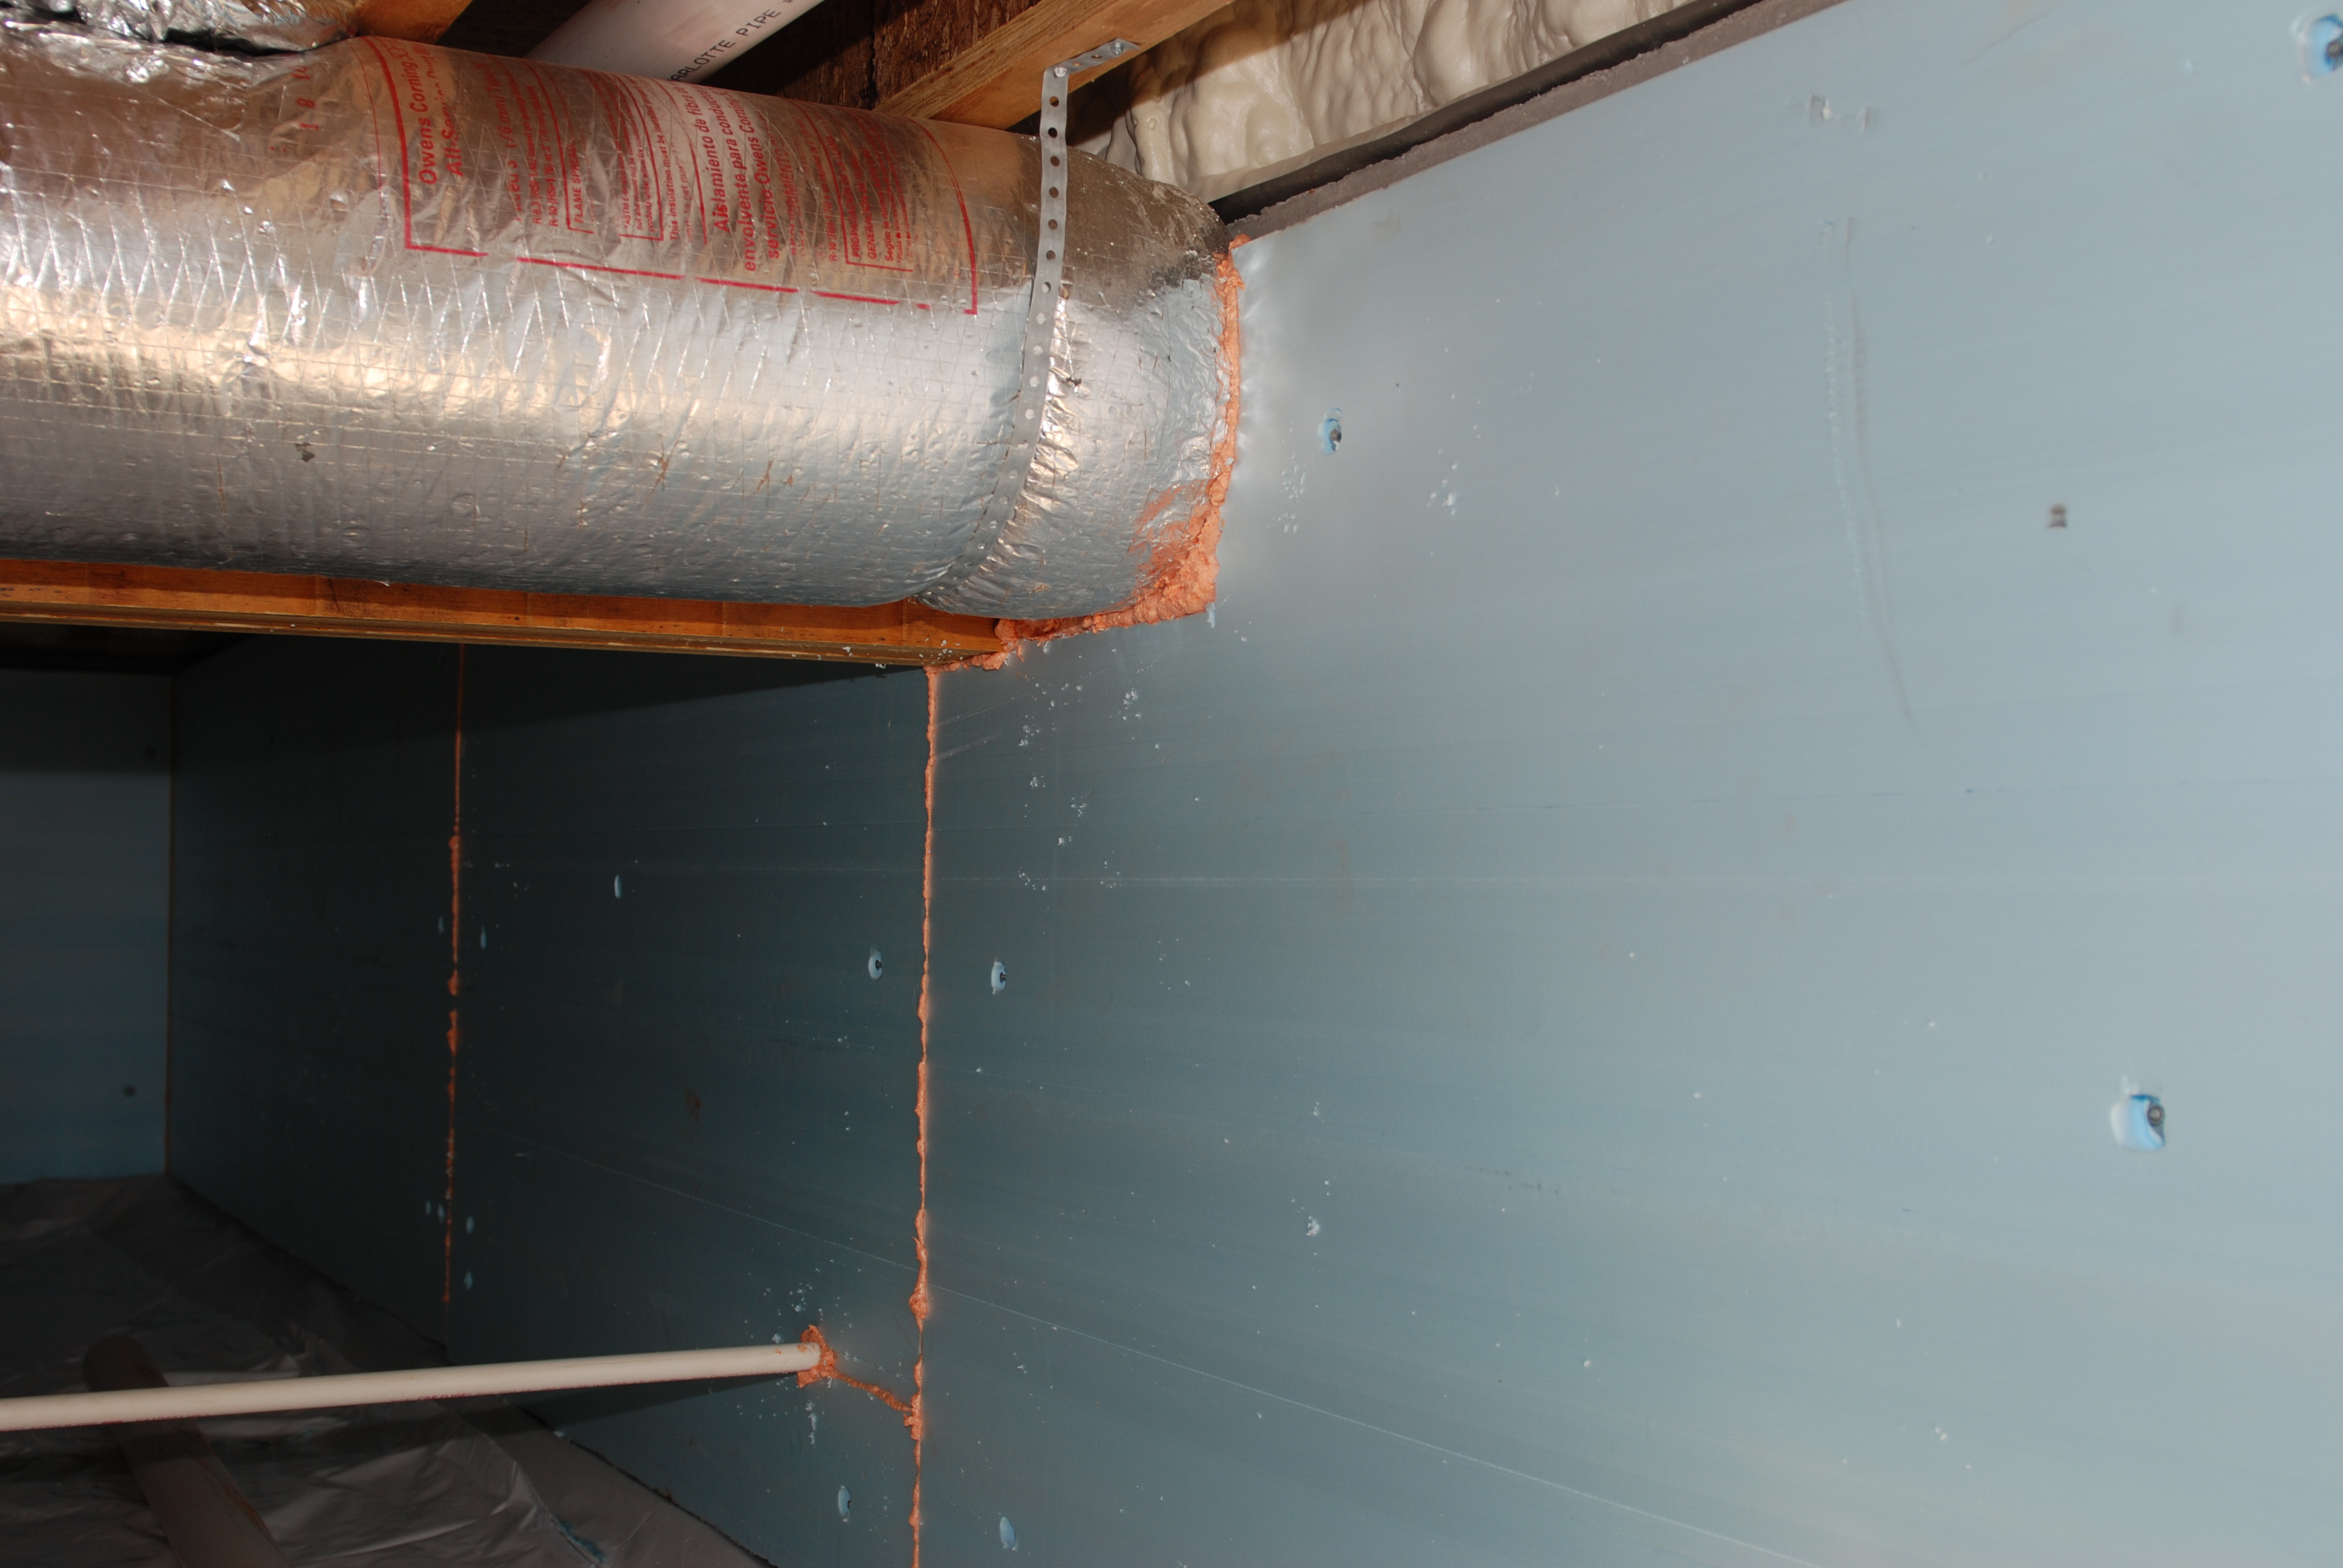 Insulation Specifically Fibergl Is Often Used In The Floor Joists A Bat Or Crawl E If It Not Contact With